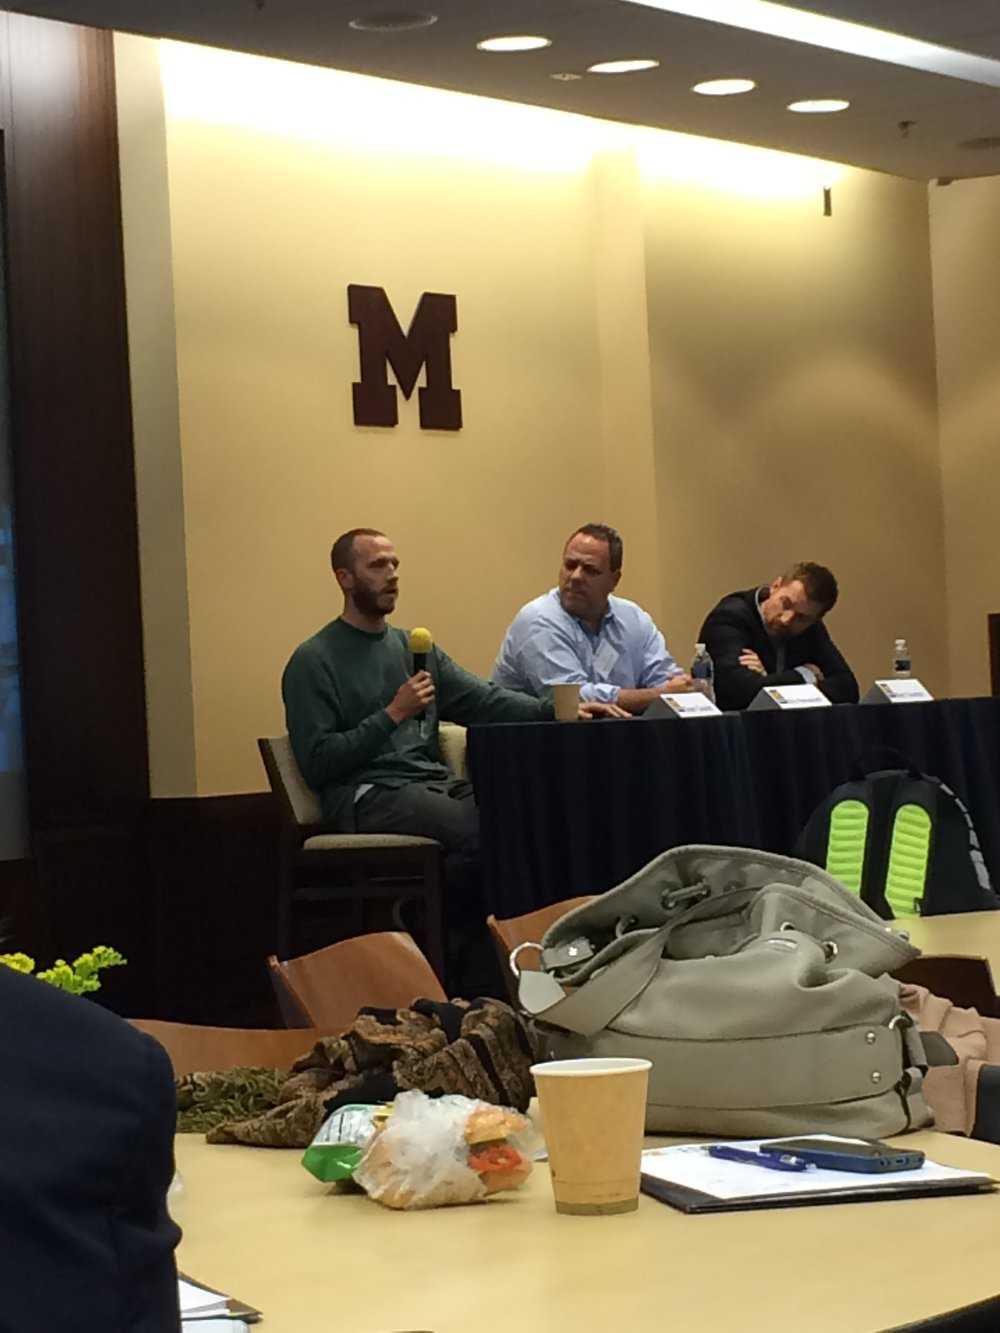 Grant Goulet, an MiPR collaborator, speaking on the Optimal Performance and Sport Technology industry panel.